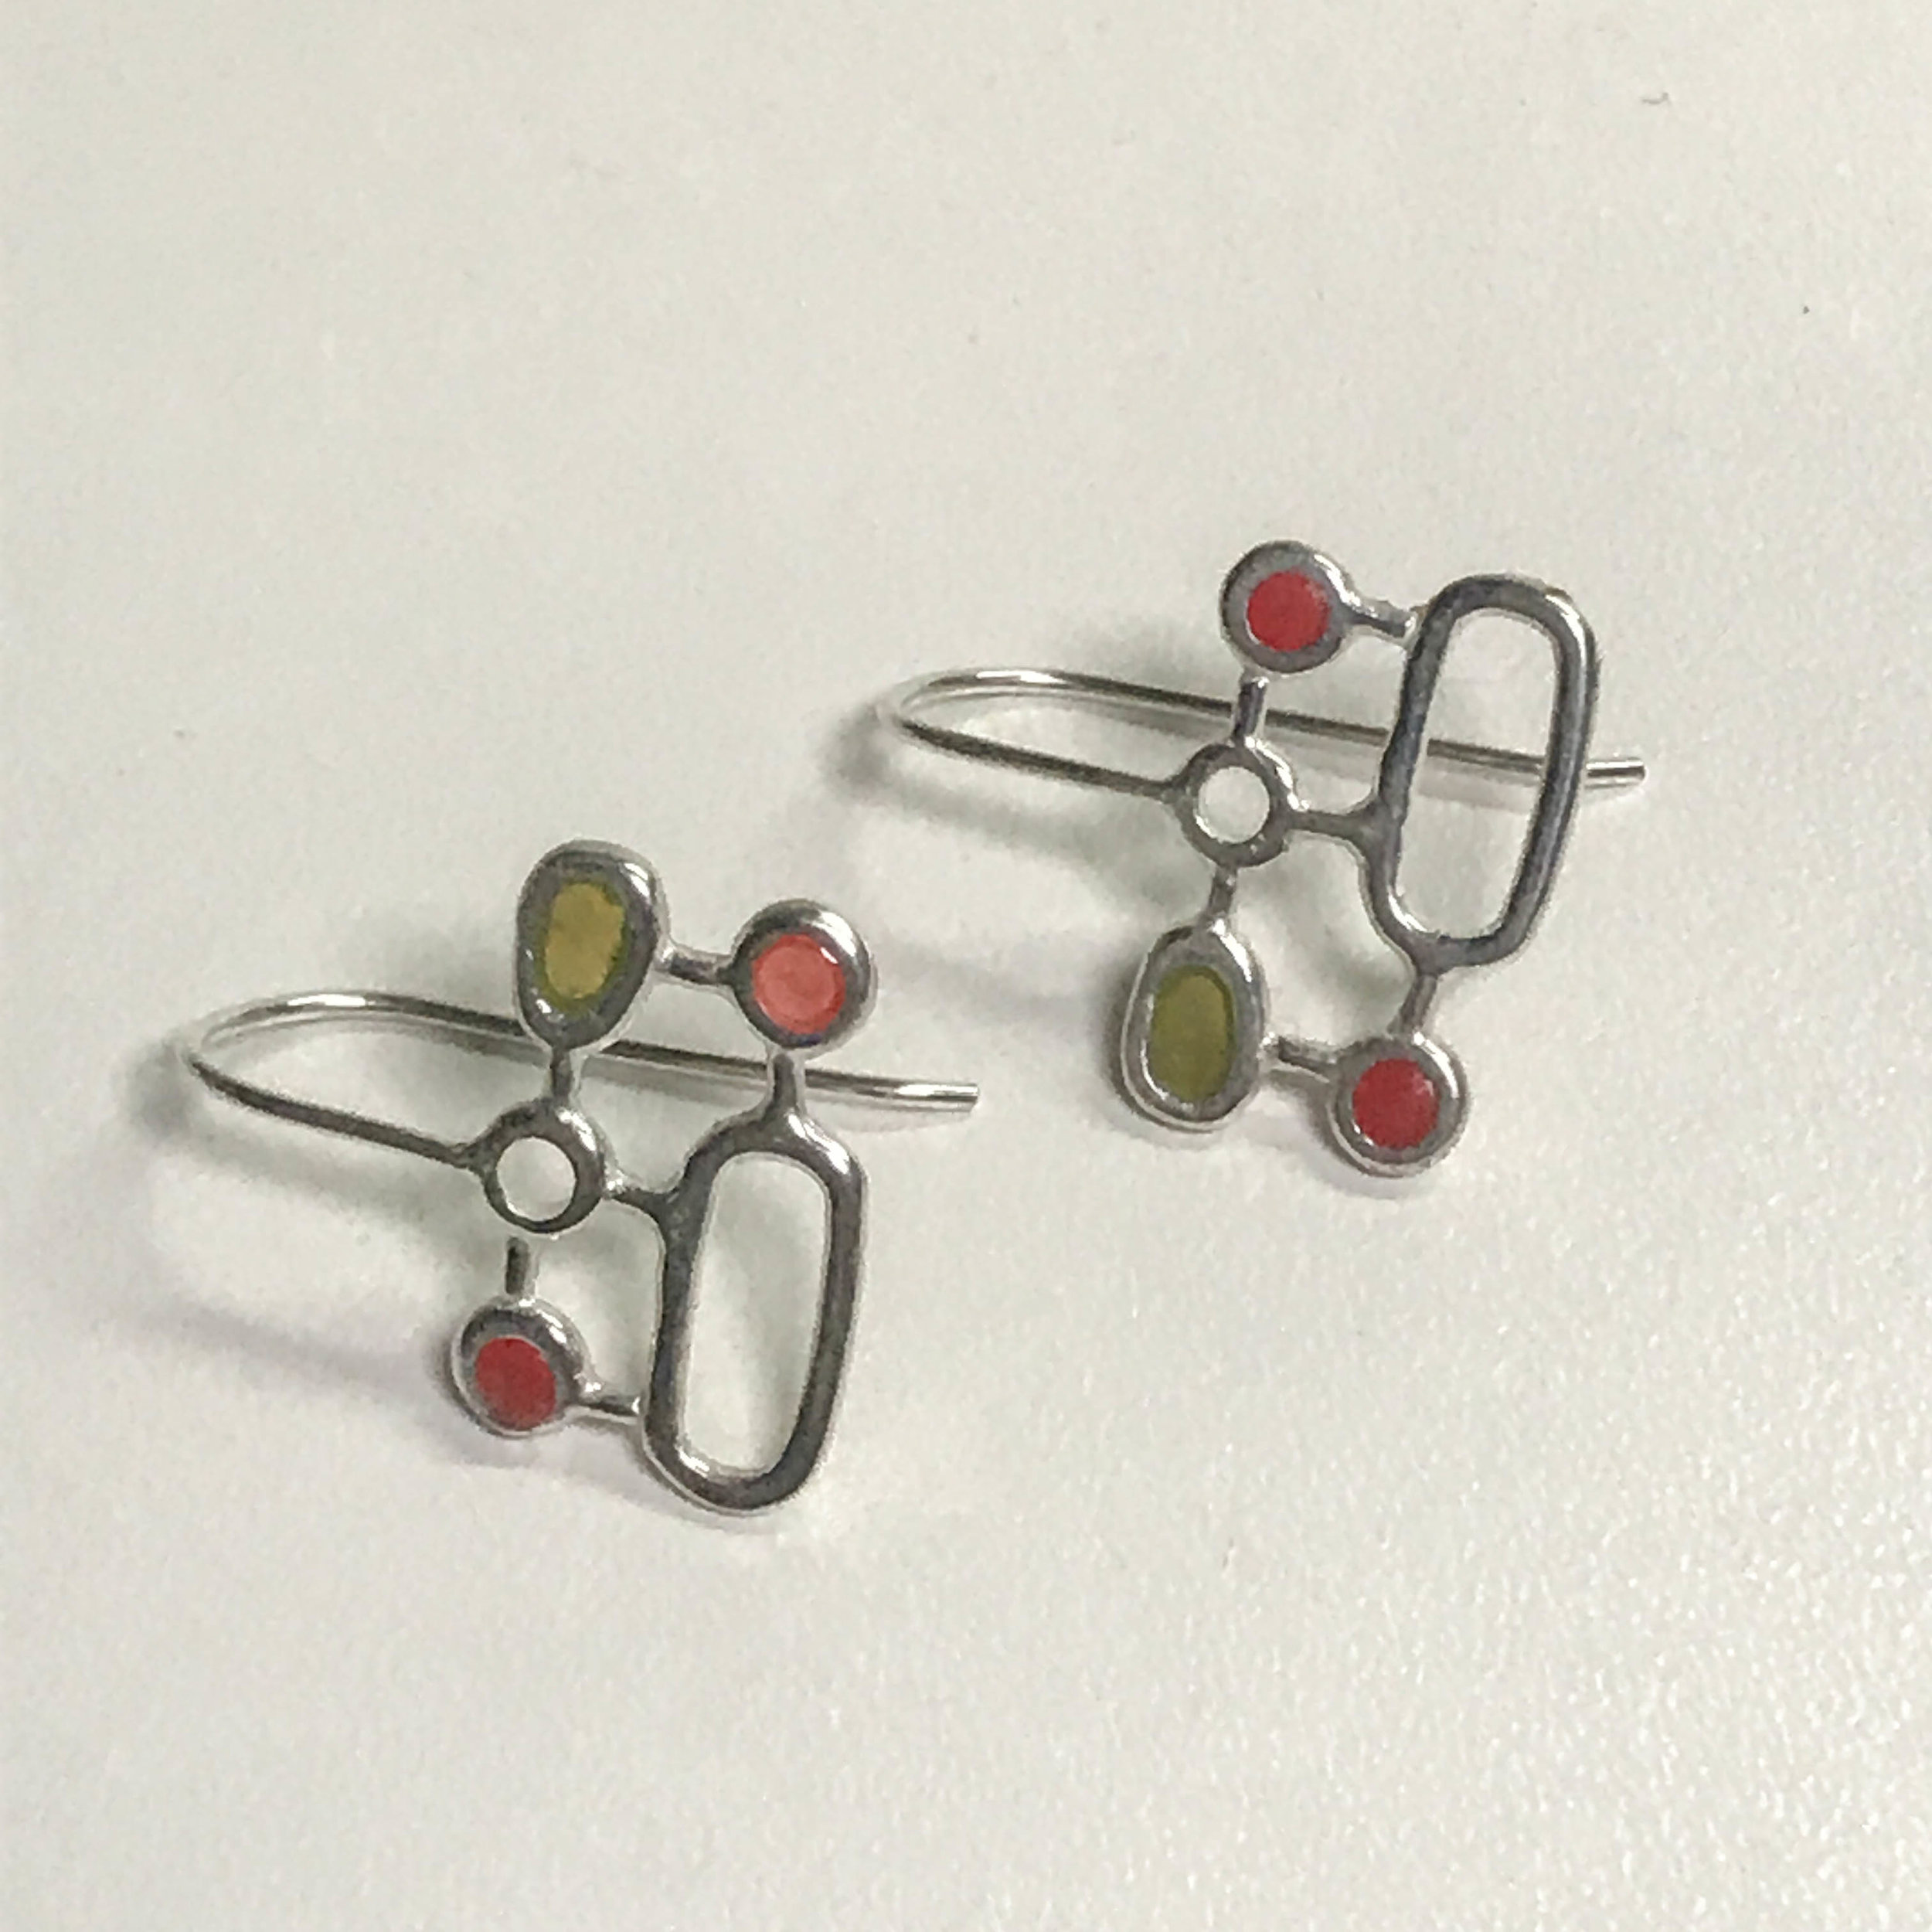 Organic geometric earrings, sterling silver with resin inlay, $80